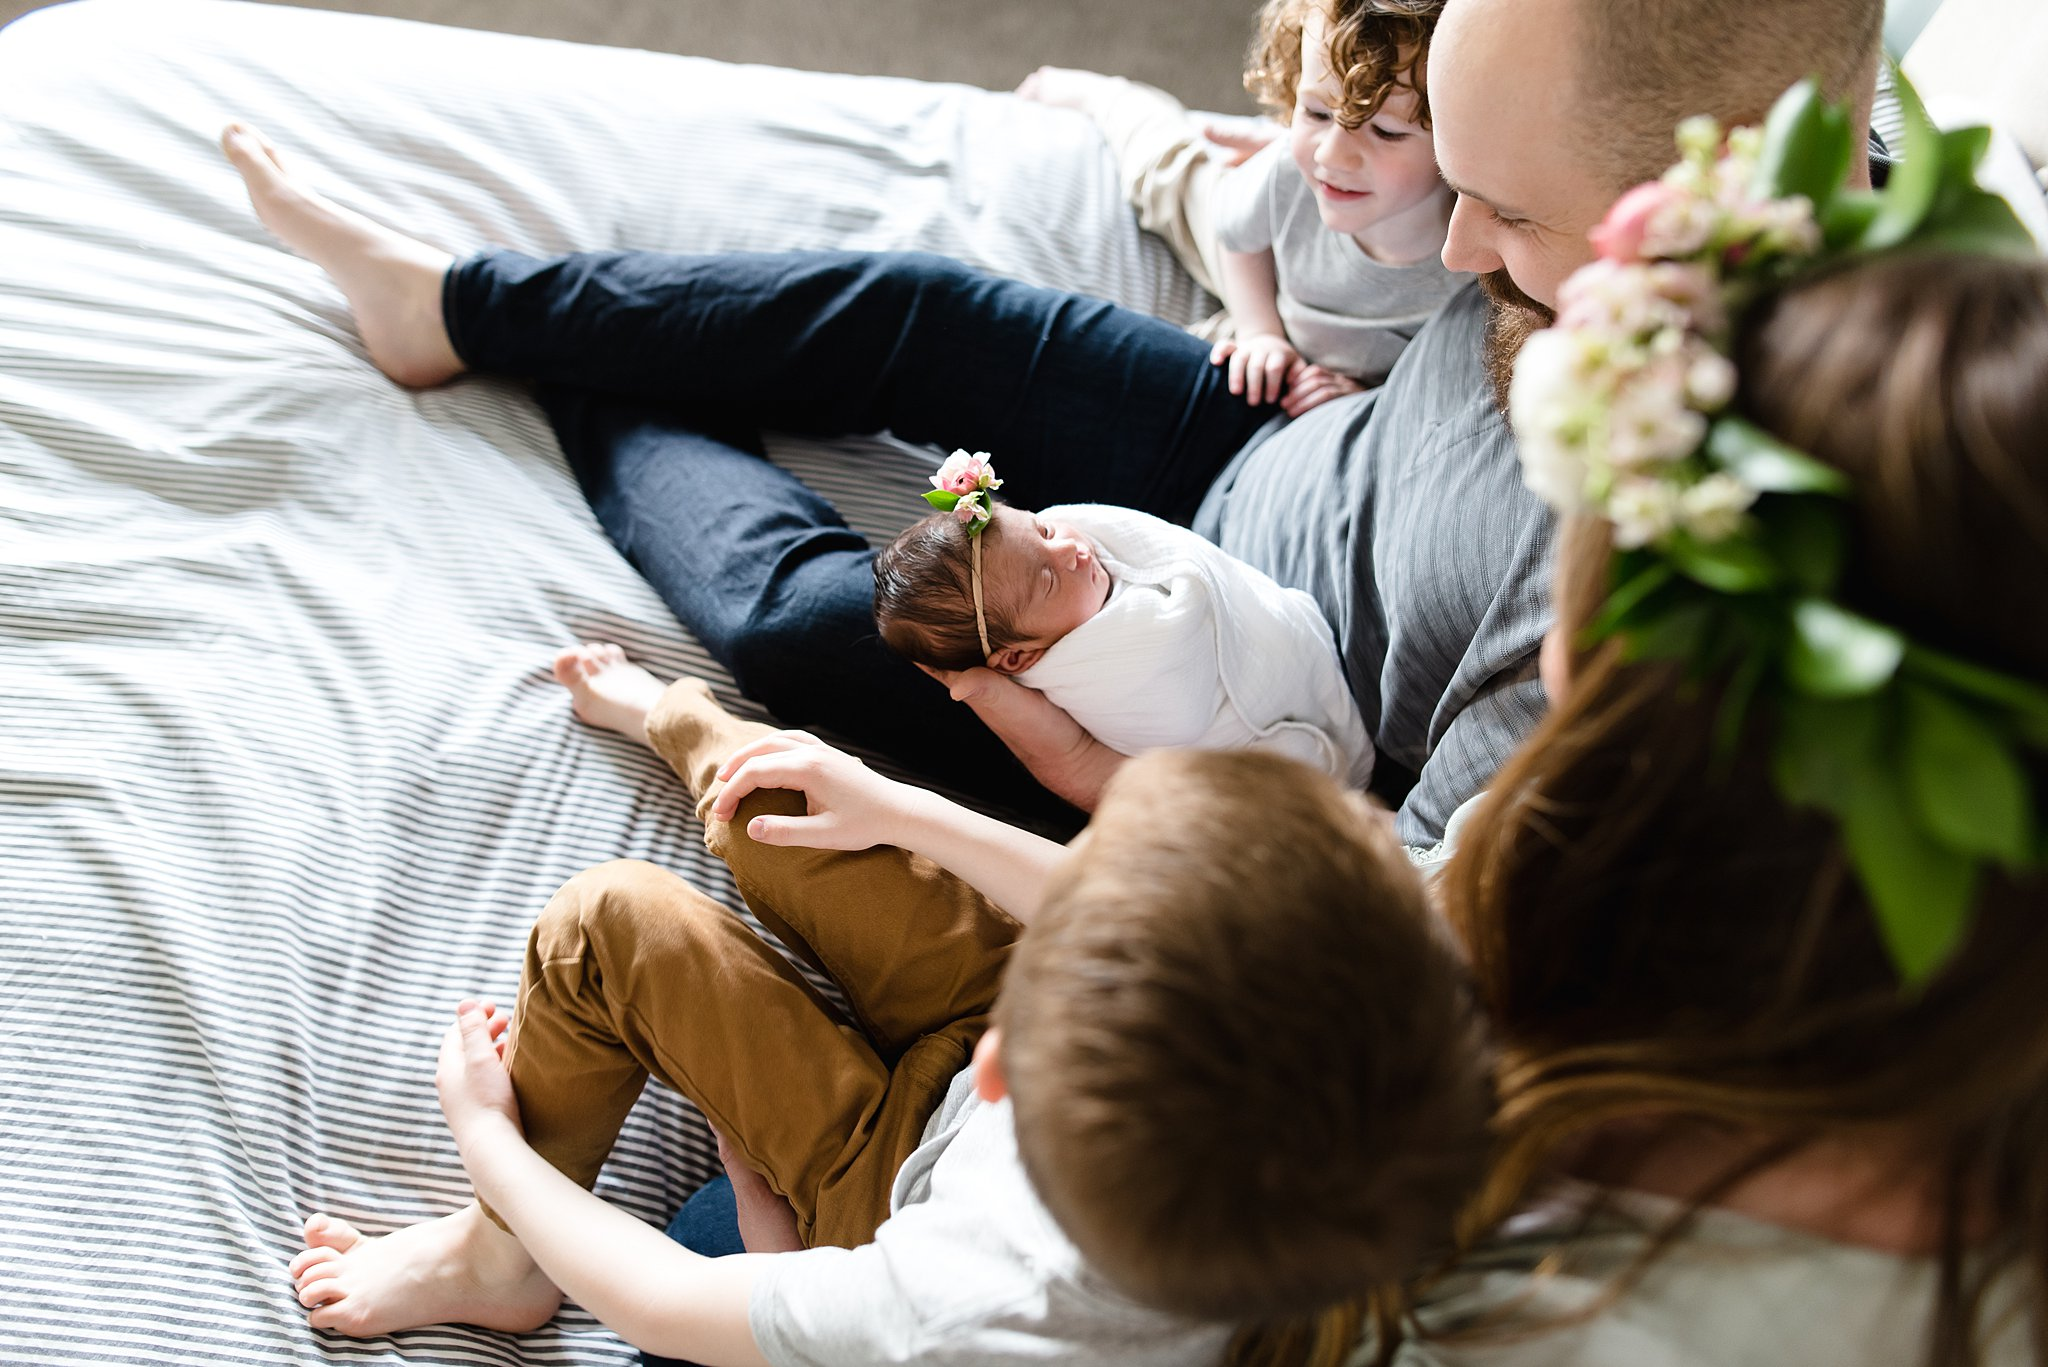 family is cozy together on a bed gazing adoringly at their new baby girl